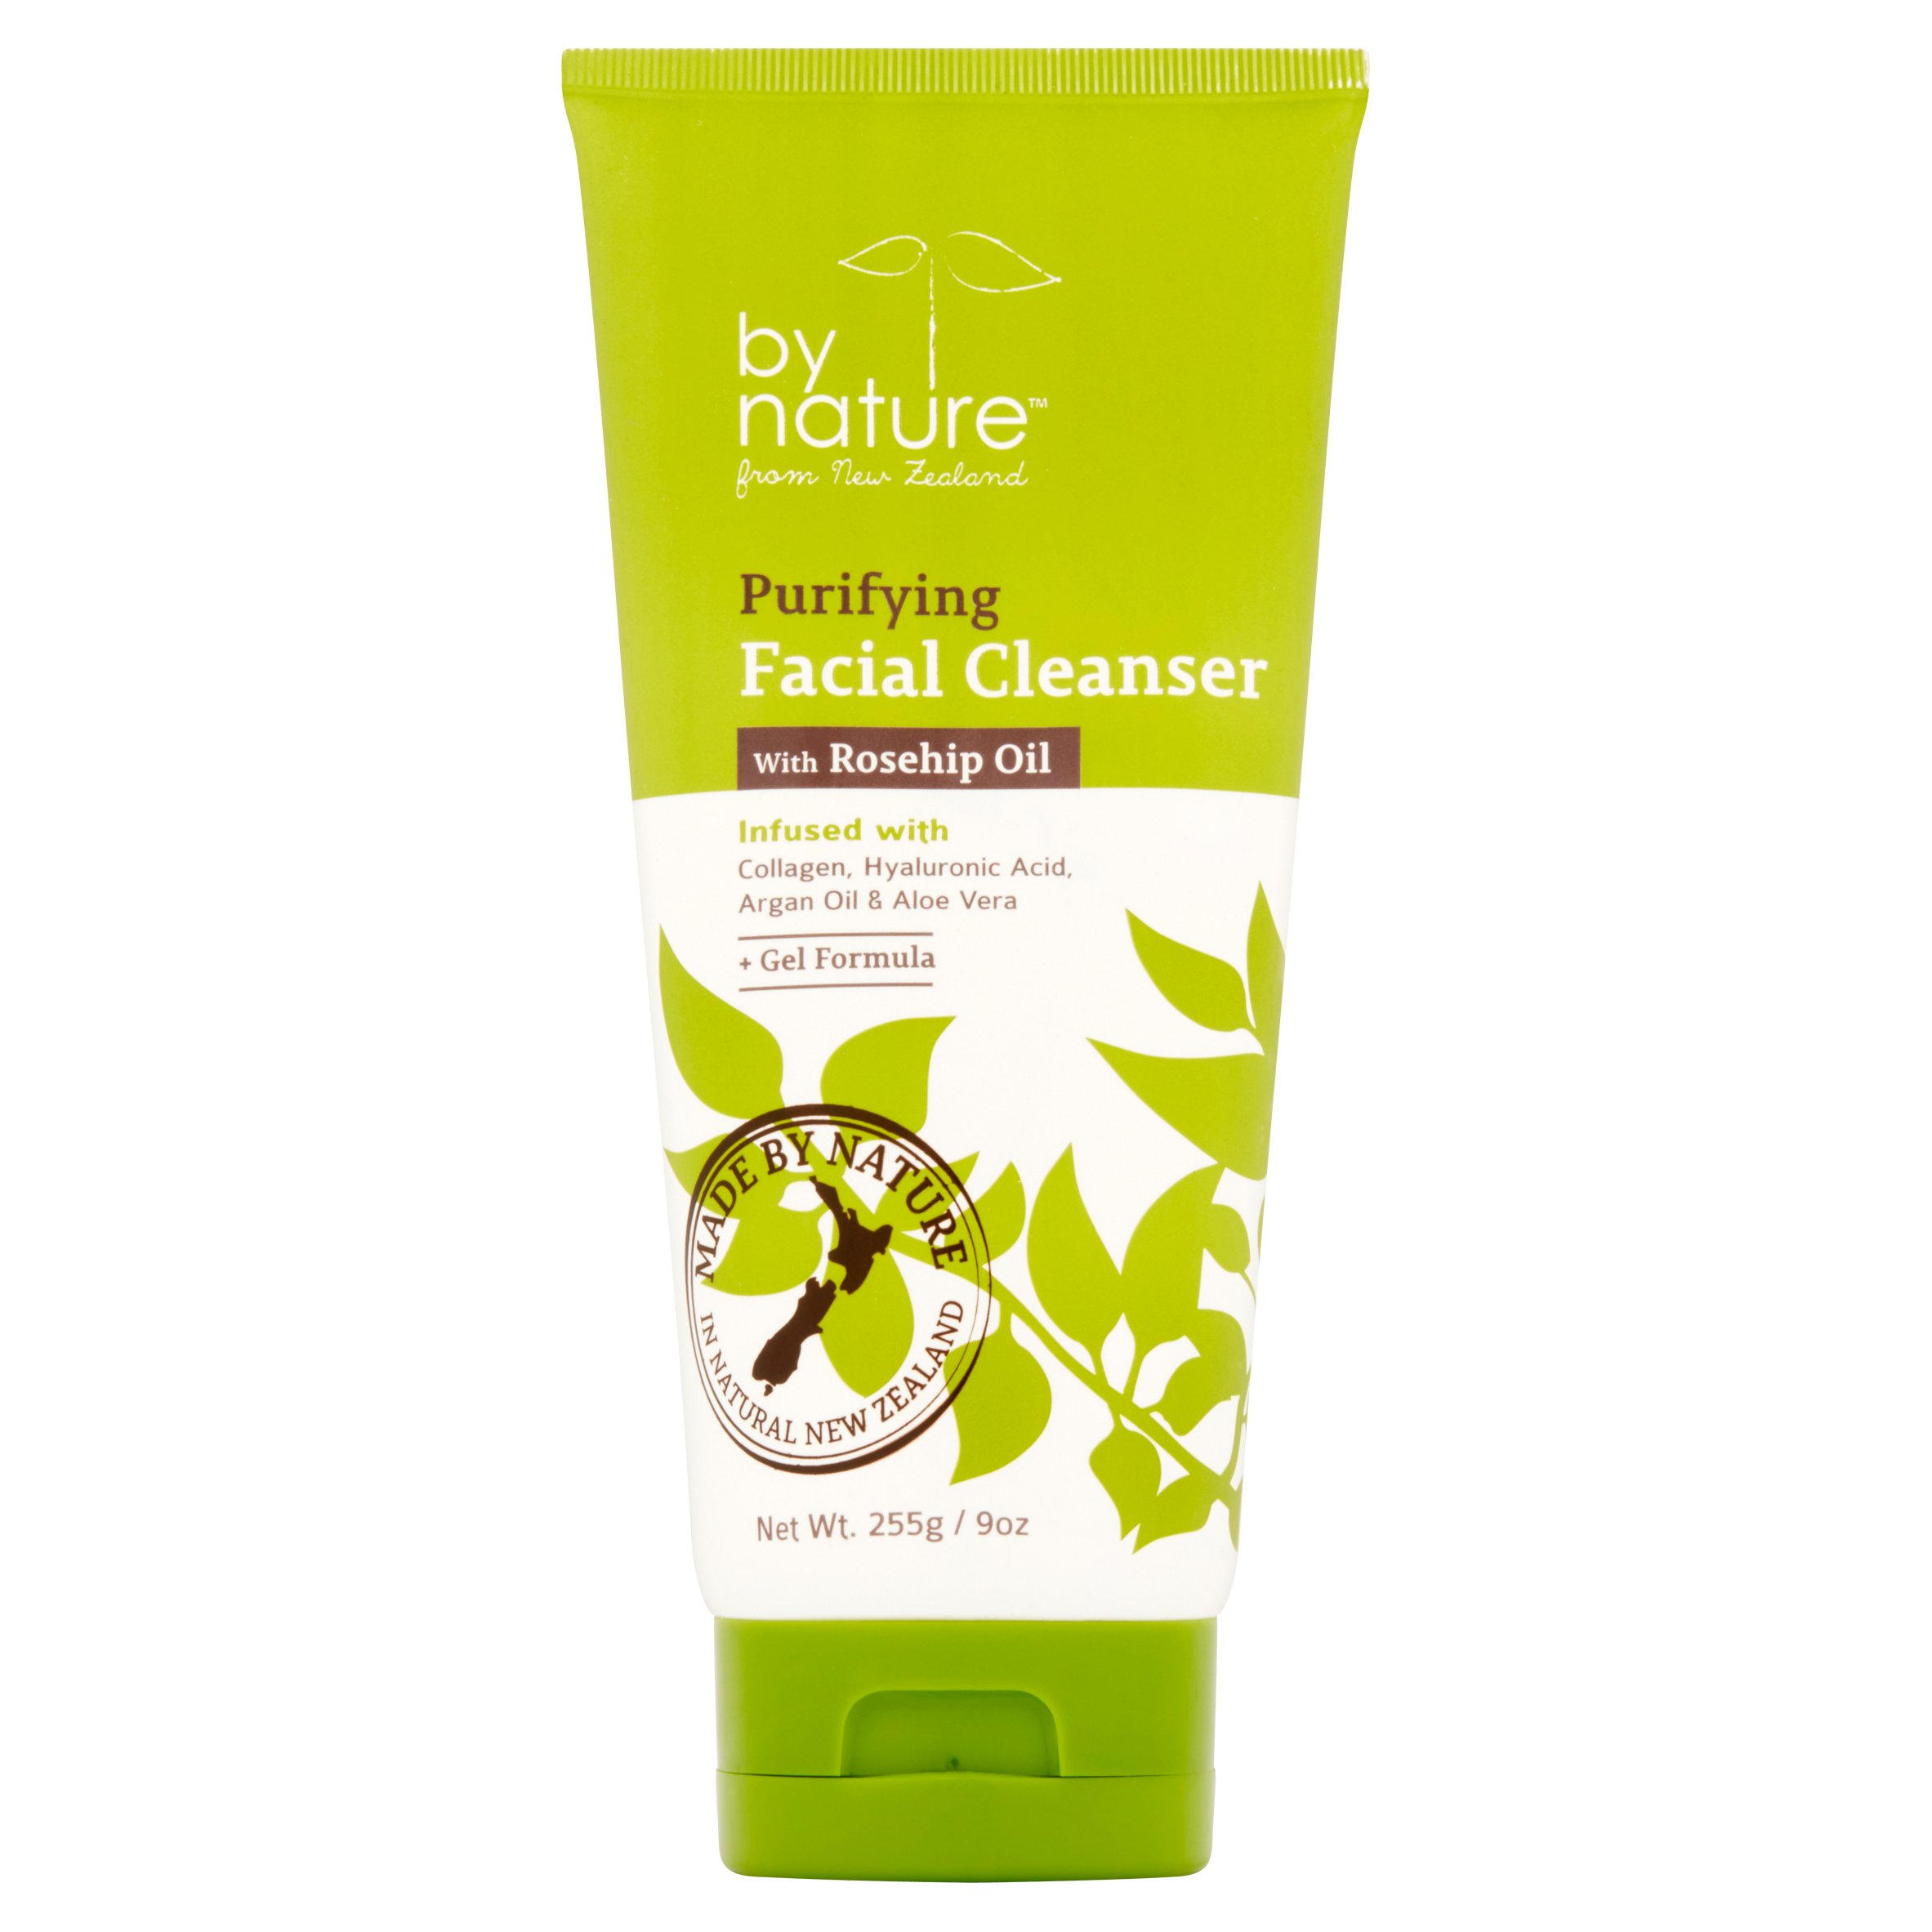 By Nature Purifying Facial Cleanser with Rosehip Oil, 9 oz